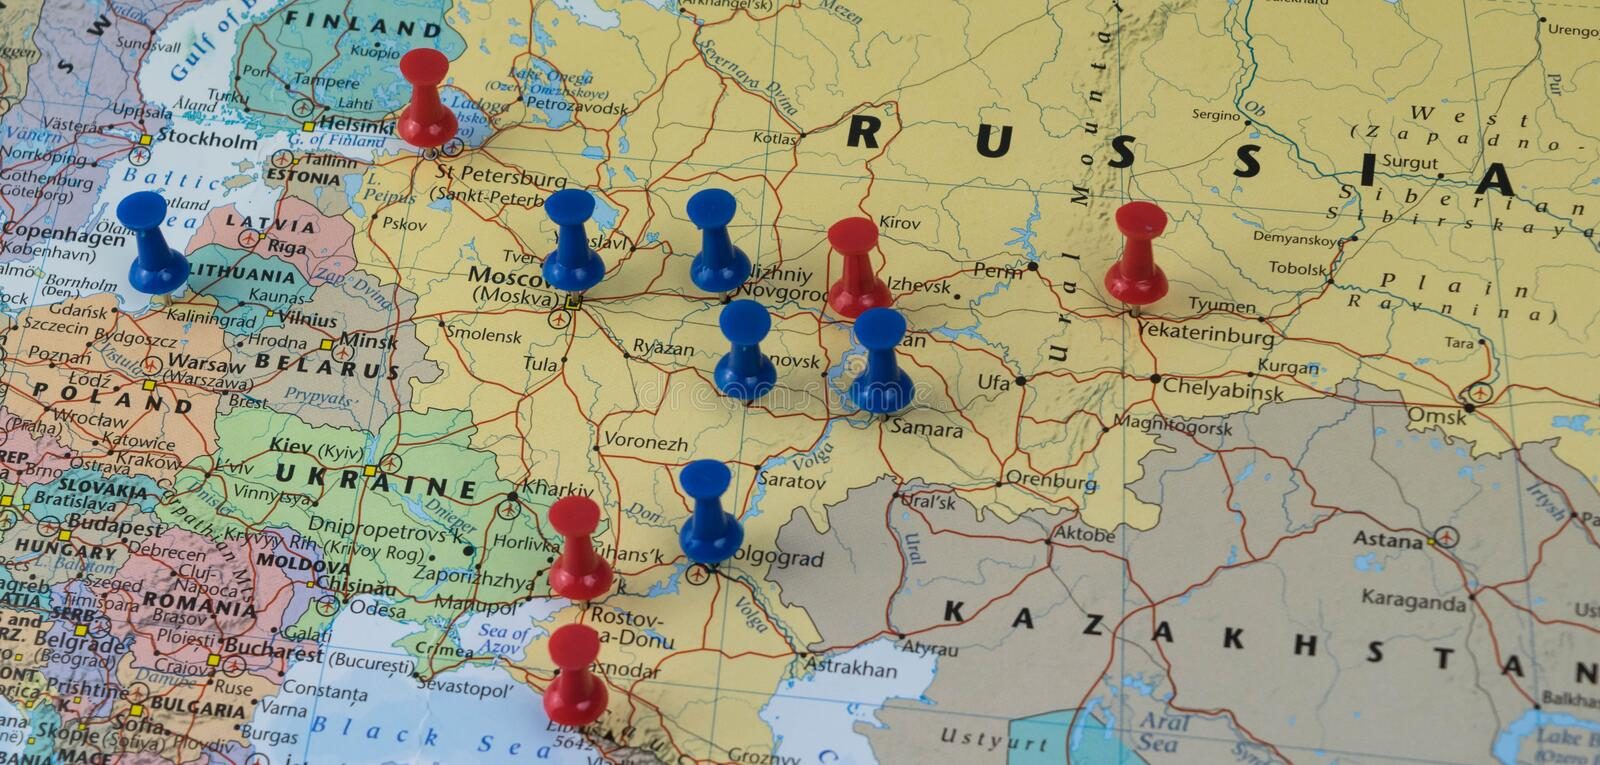 Moscow Pinned with other world cup venue cities in a closeup map for football world cup 2018 in Russia royalty free stock photo